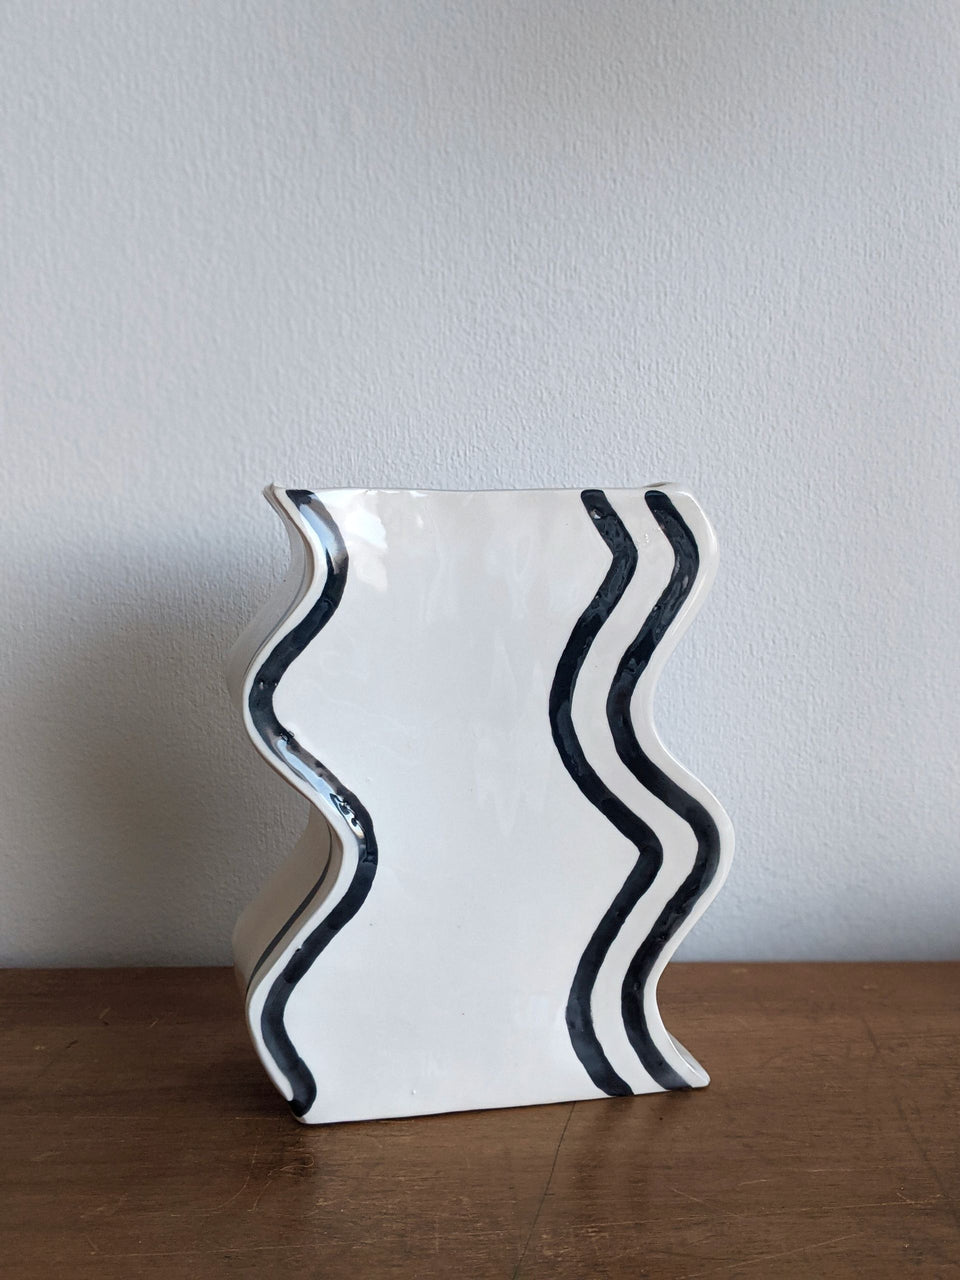 Son of Pear Handmade Ceramic Wave Vase Black and White Monochrome